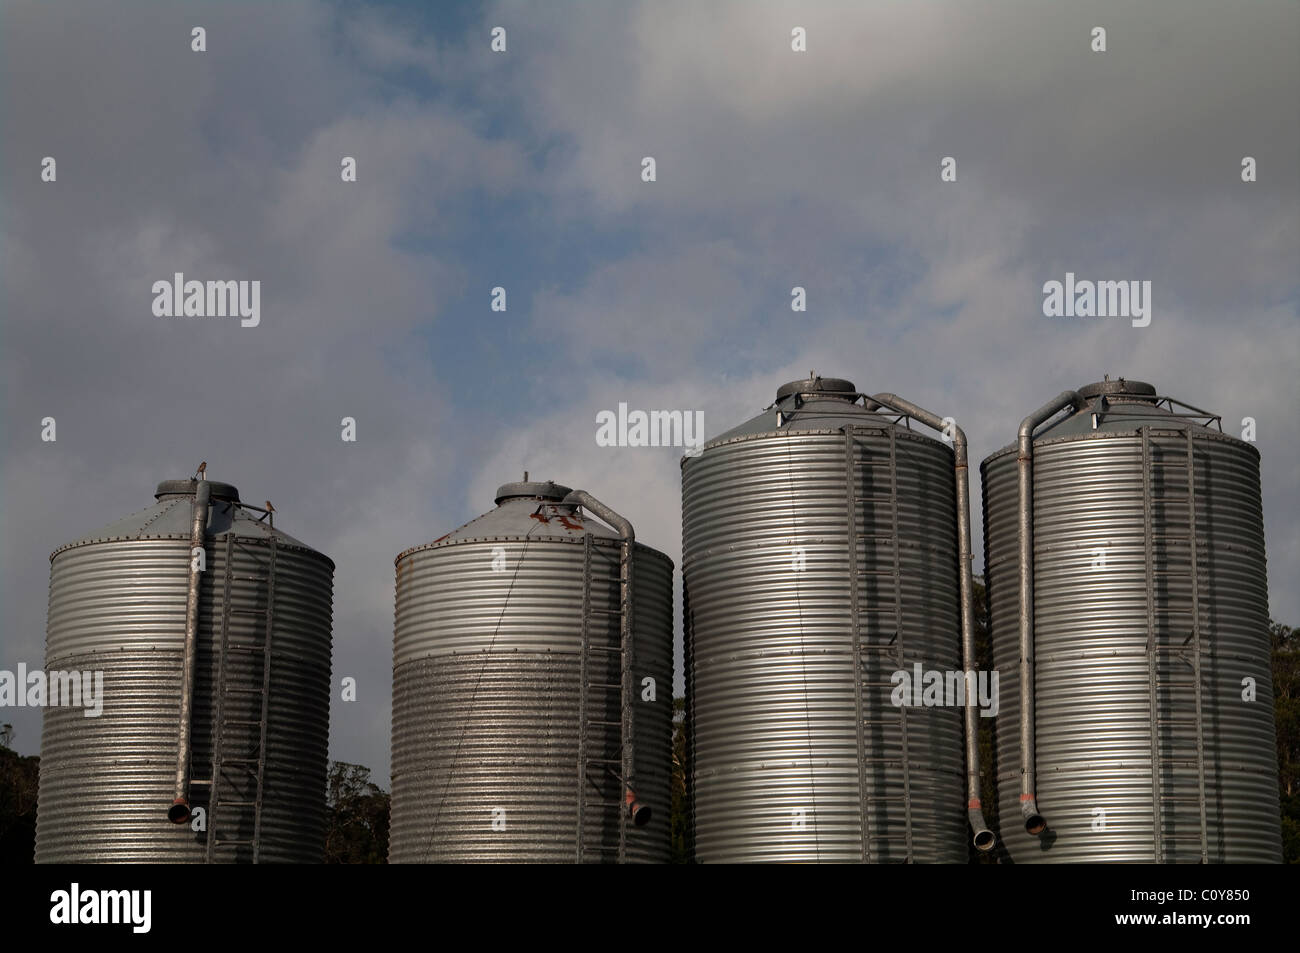 Feed silos outside broiler chicken poultry farm in Terceira island in the Azores - Stock Image